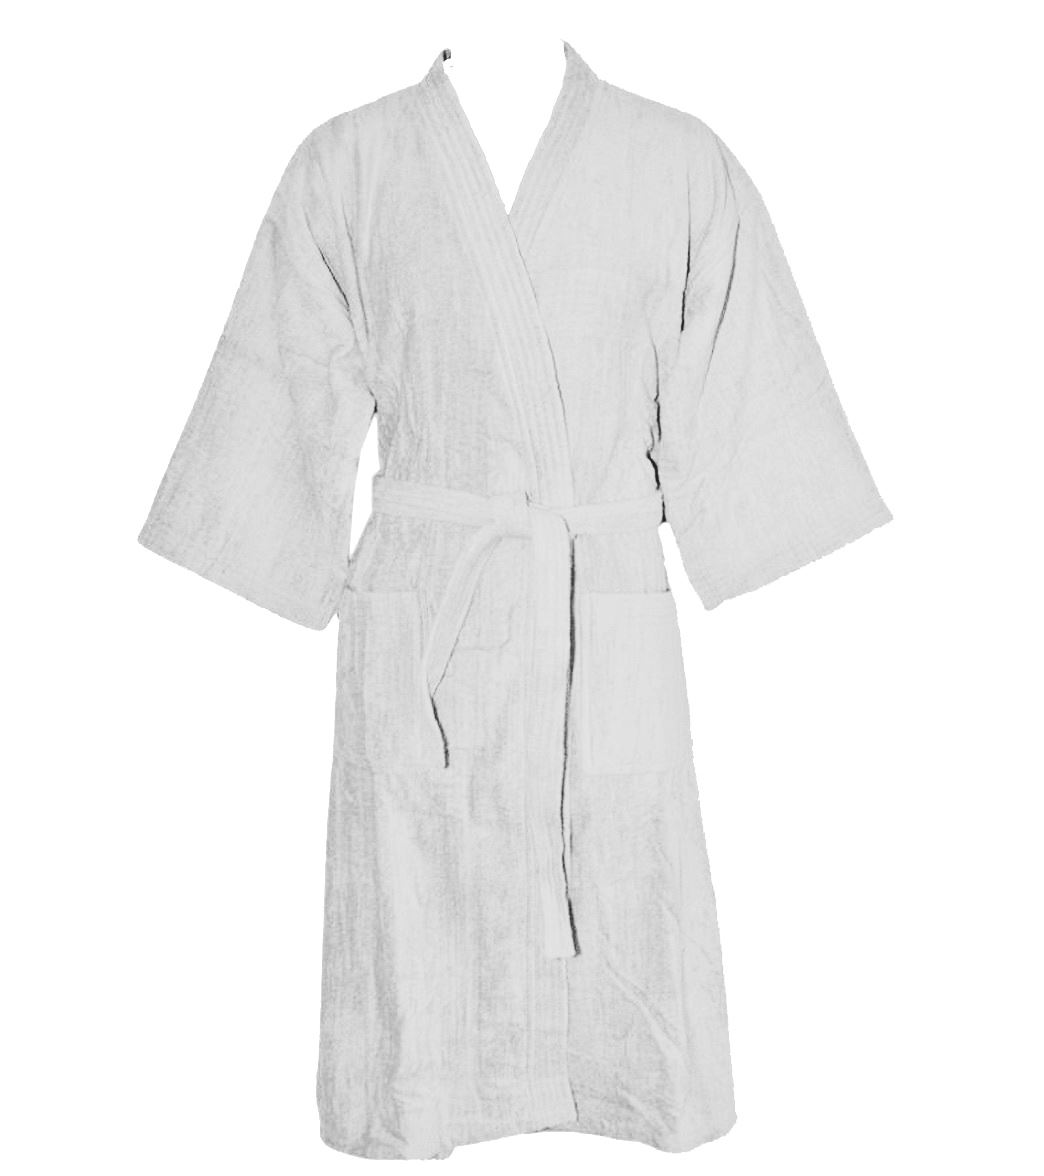 Nightware Toweling Bathrobe 100 Egyptian Cotton Dressing Gown With ...